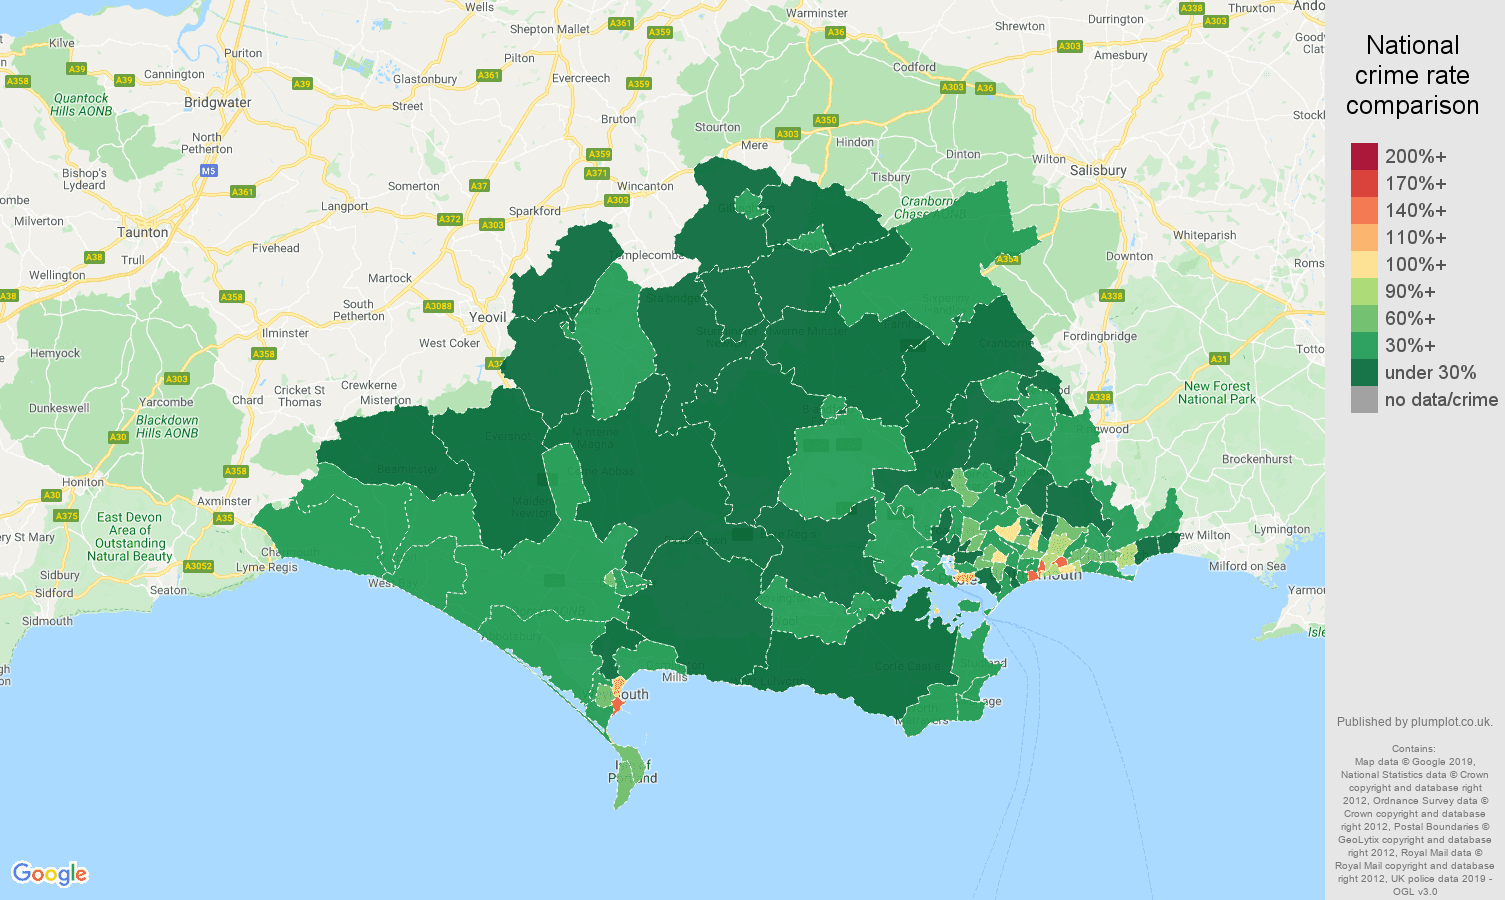 Dorset public order crime rate comparison map